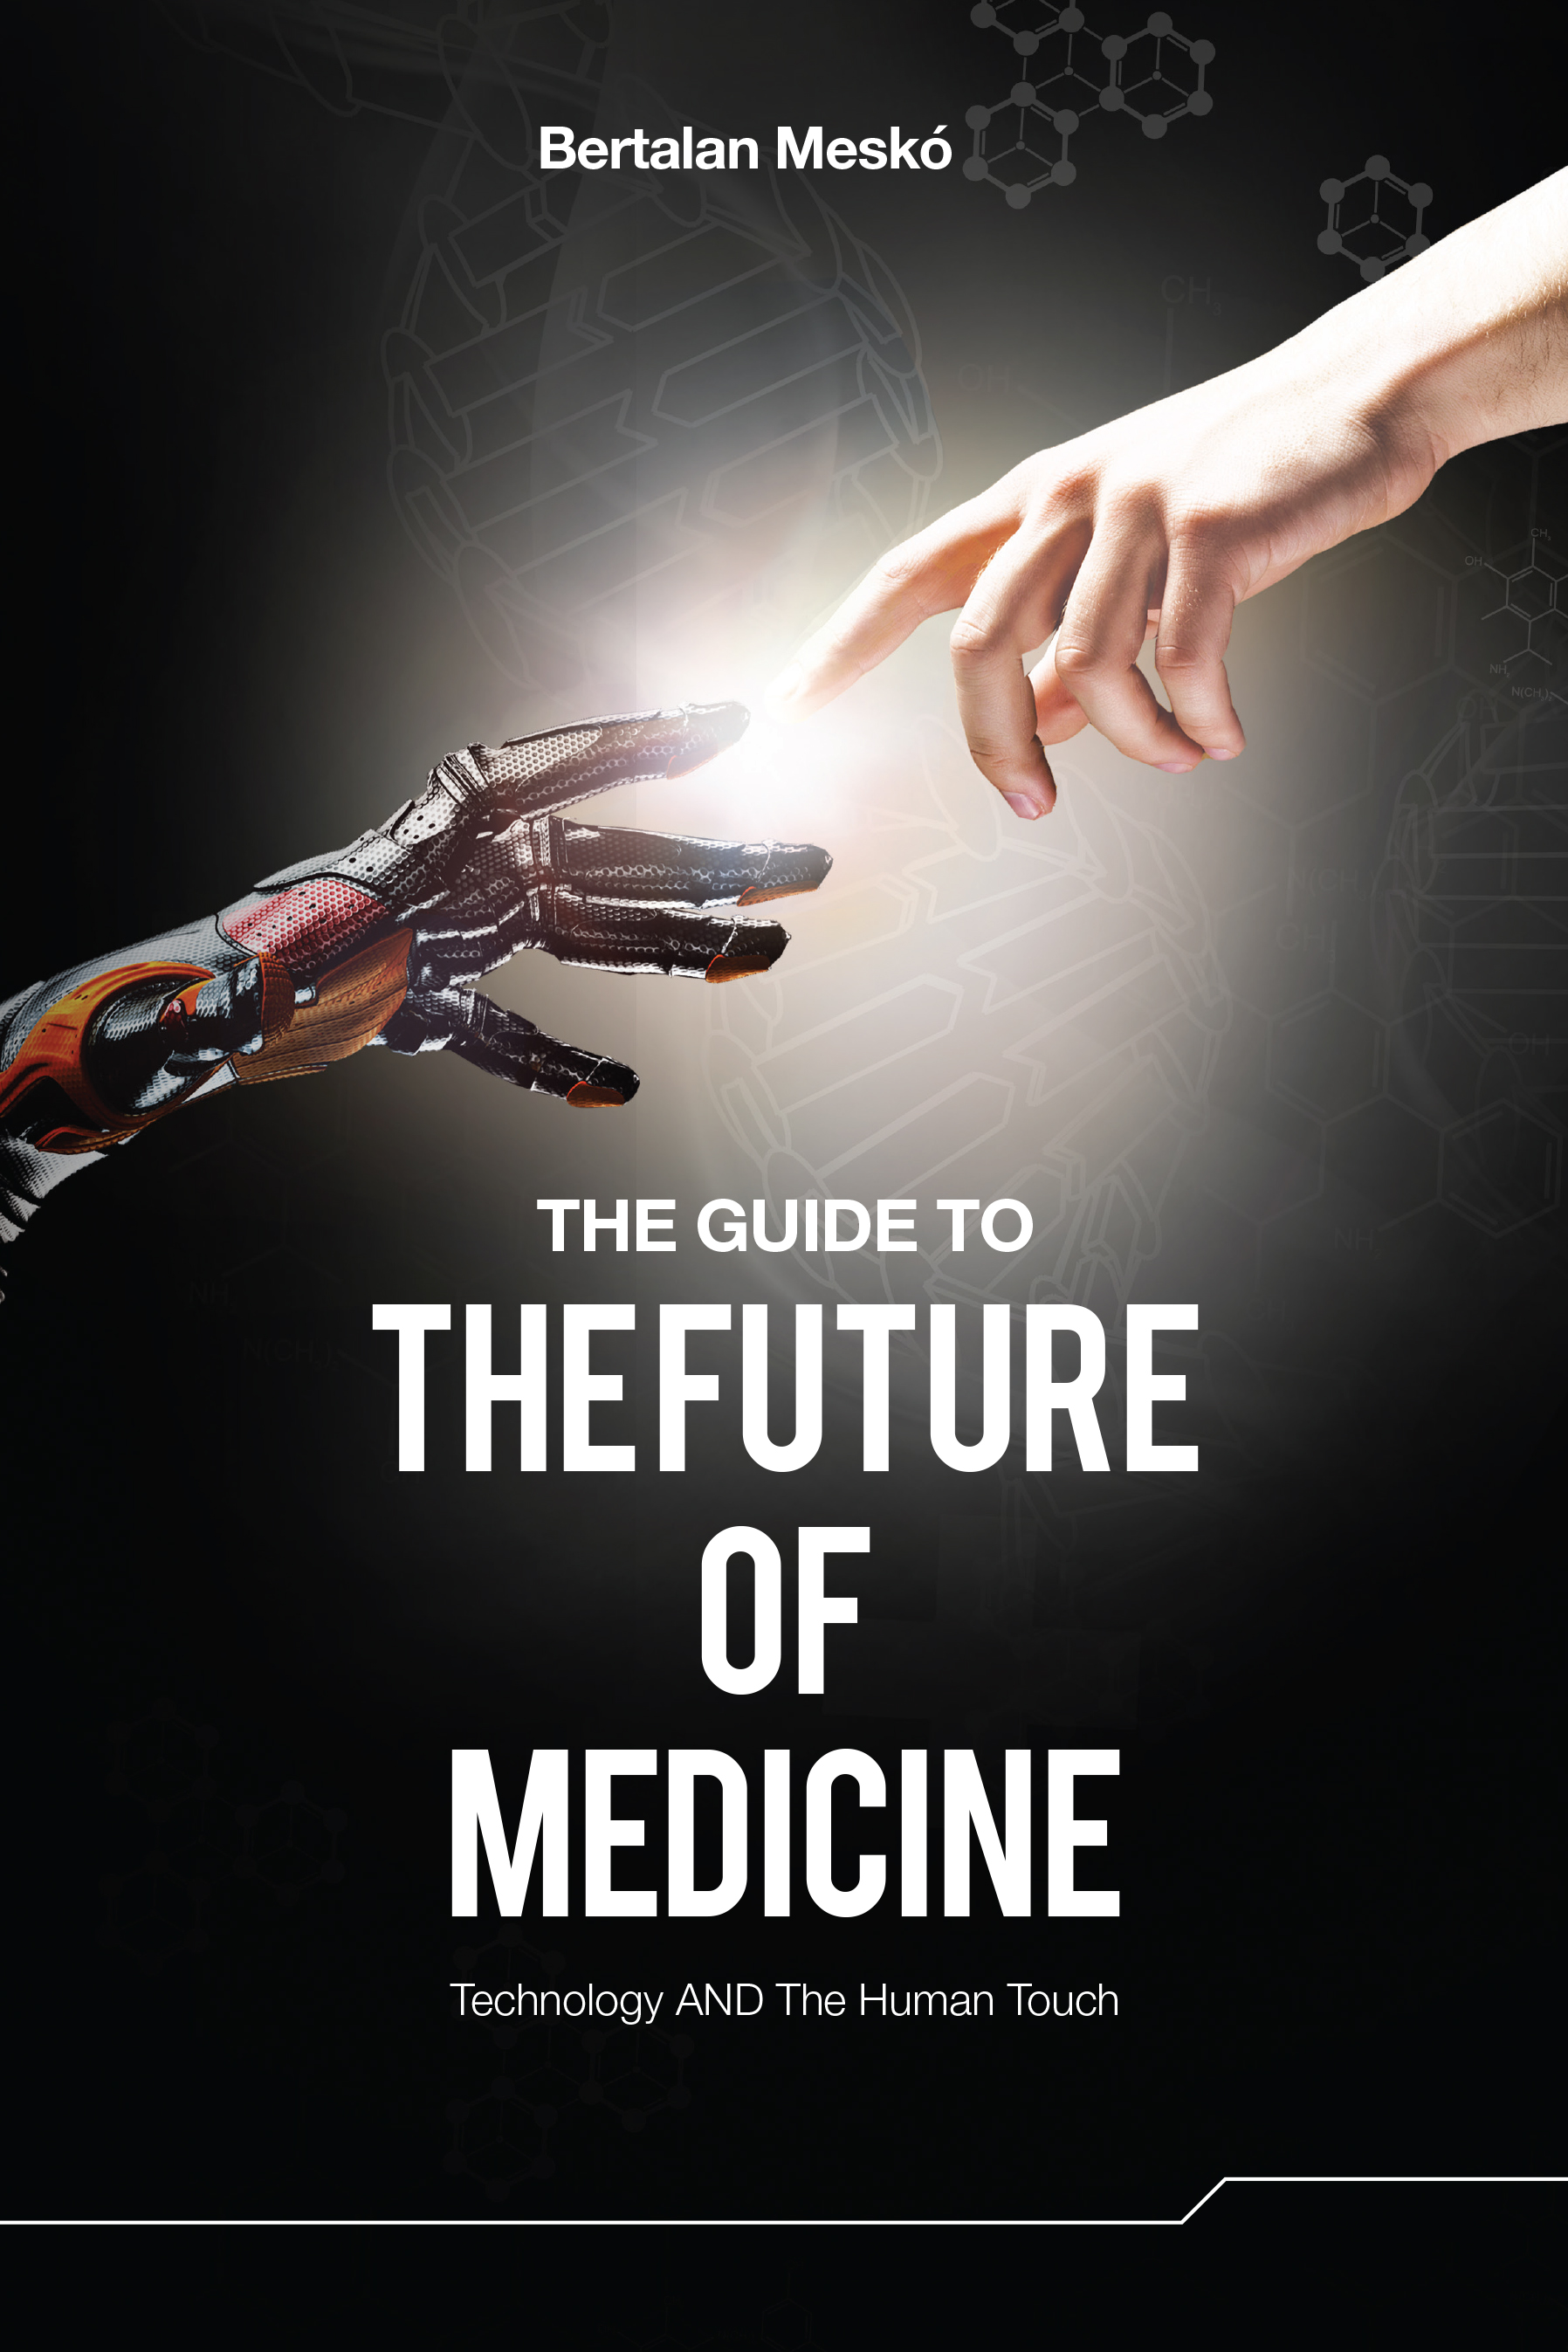 the_guide_to_the_future_of_medicine_ebook_cover_1409672492.jpg_1796x2694